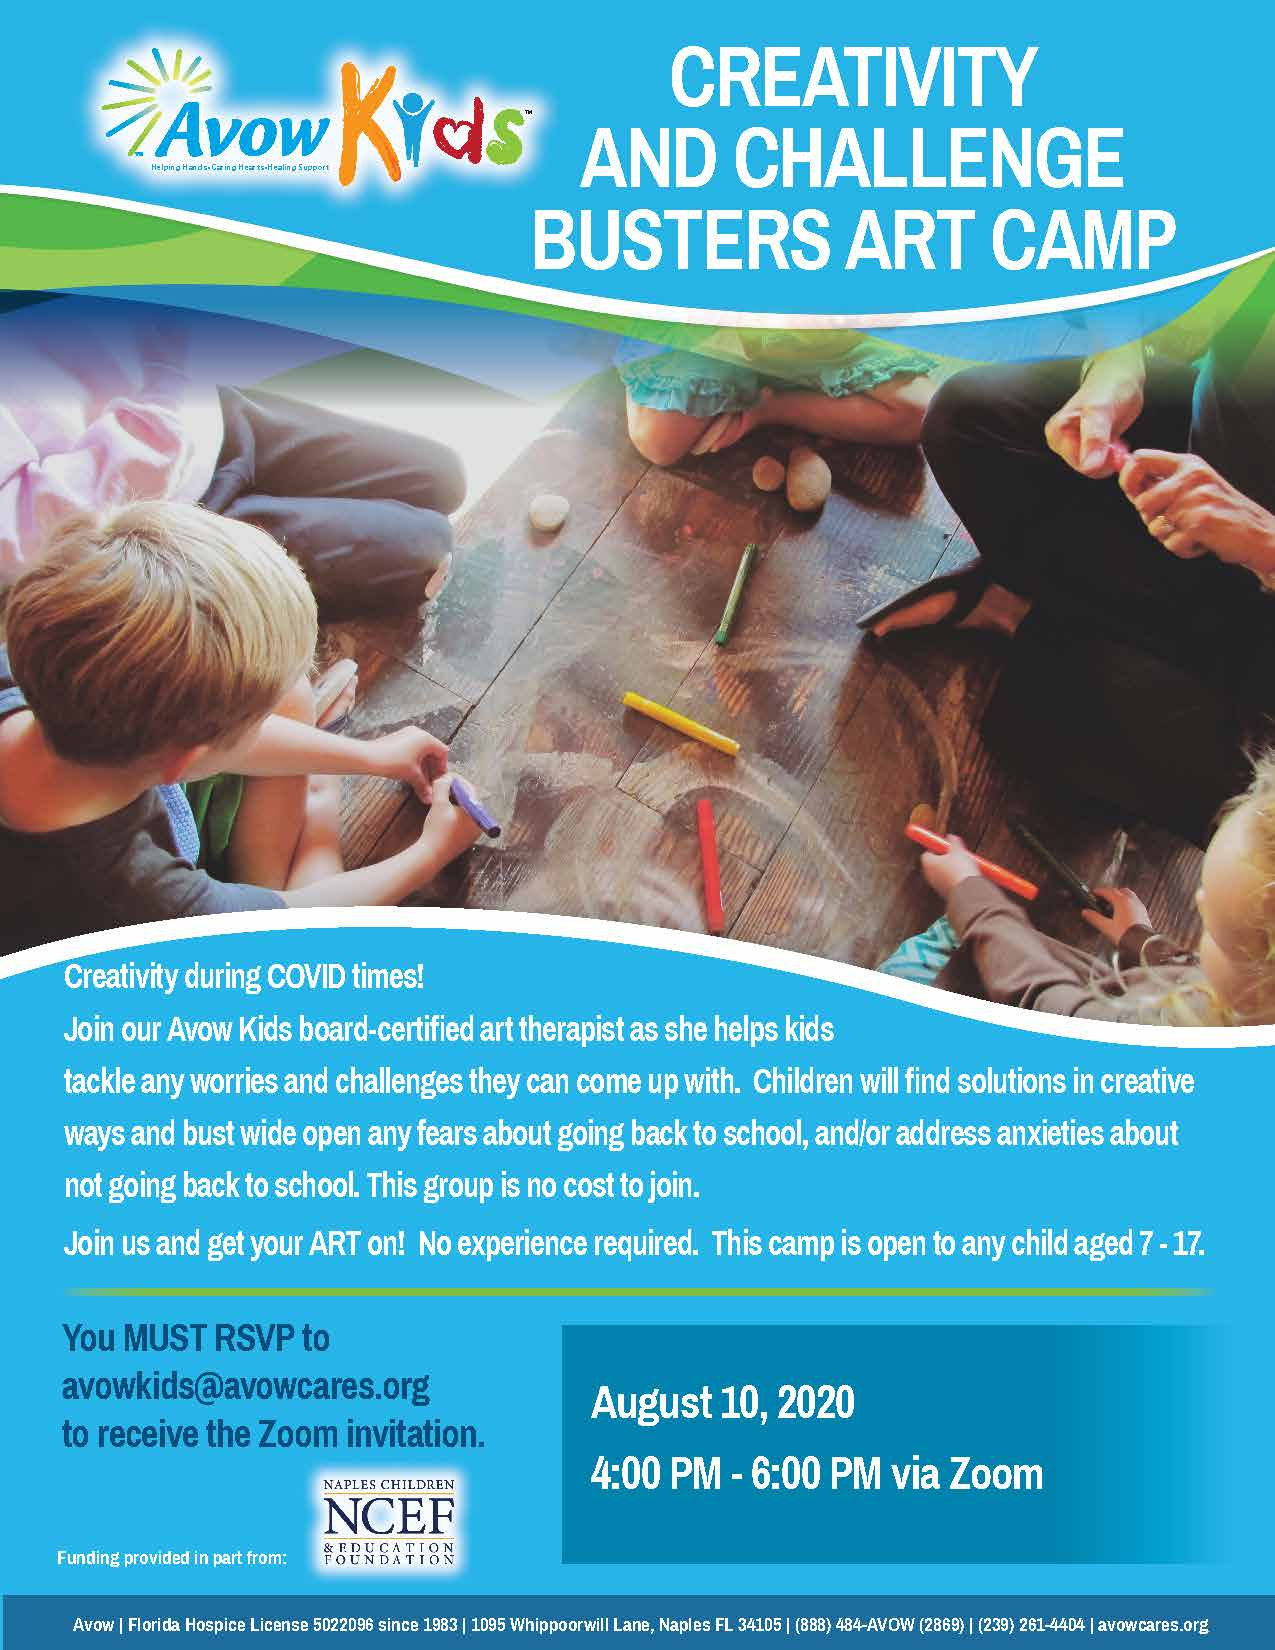 Creativity and Challenge Busters Art Camp